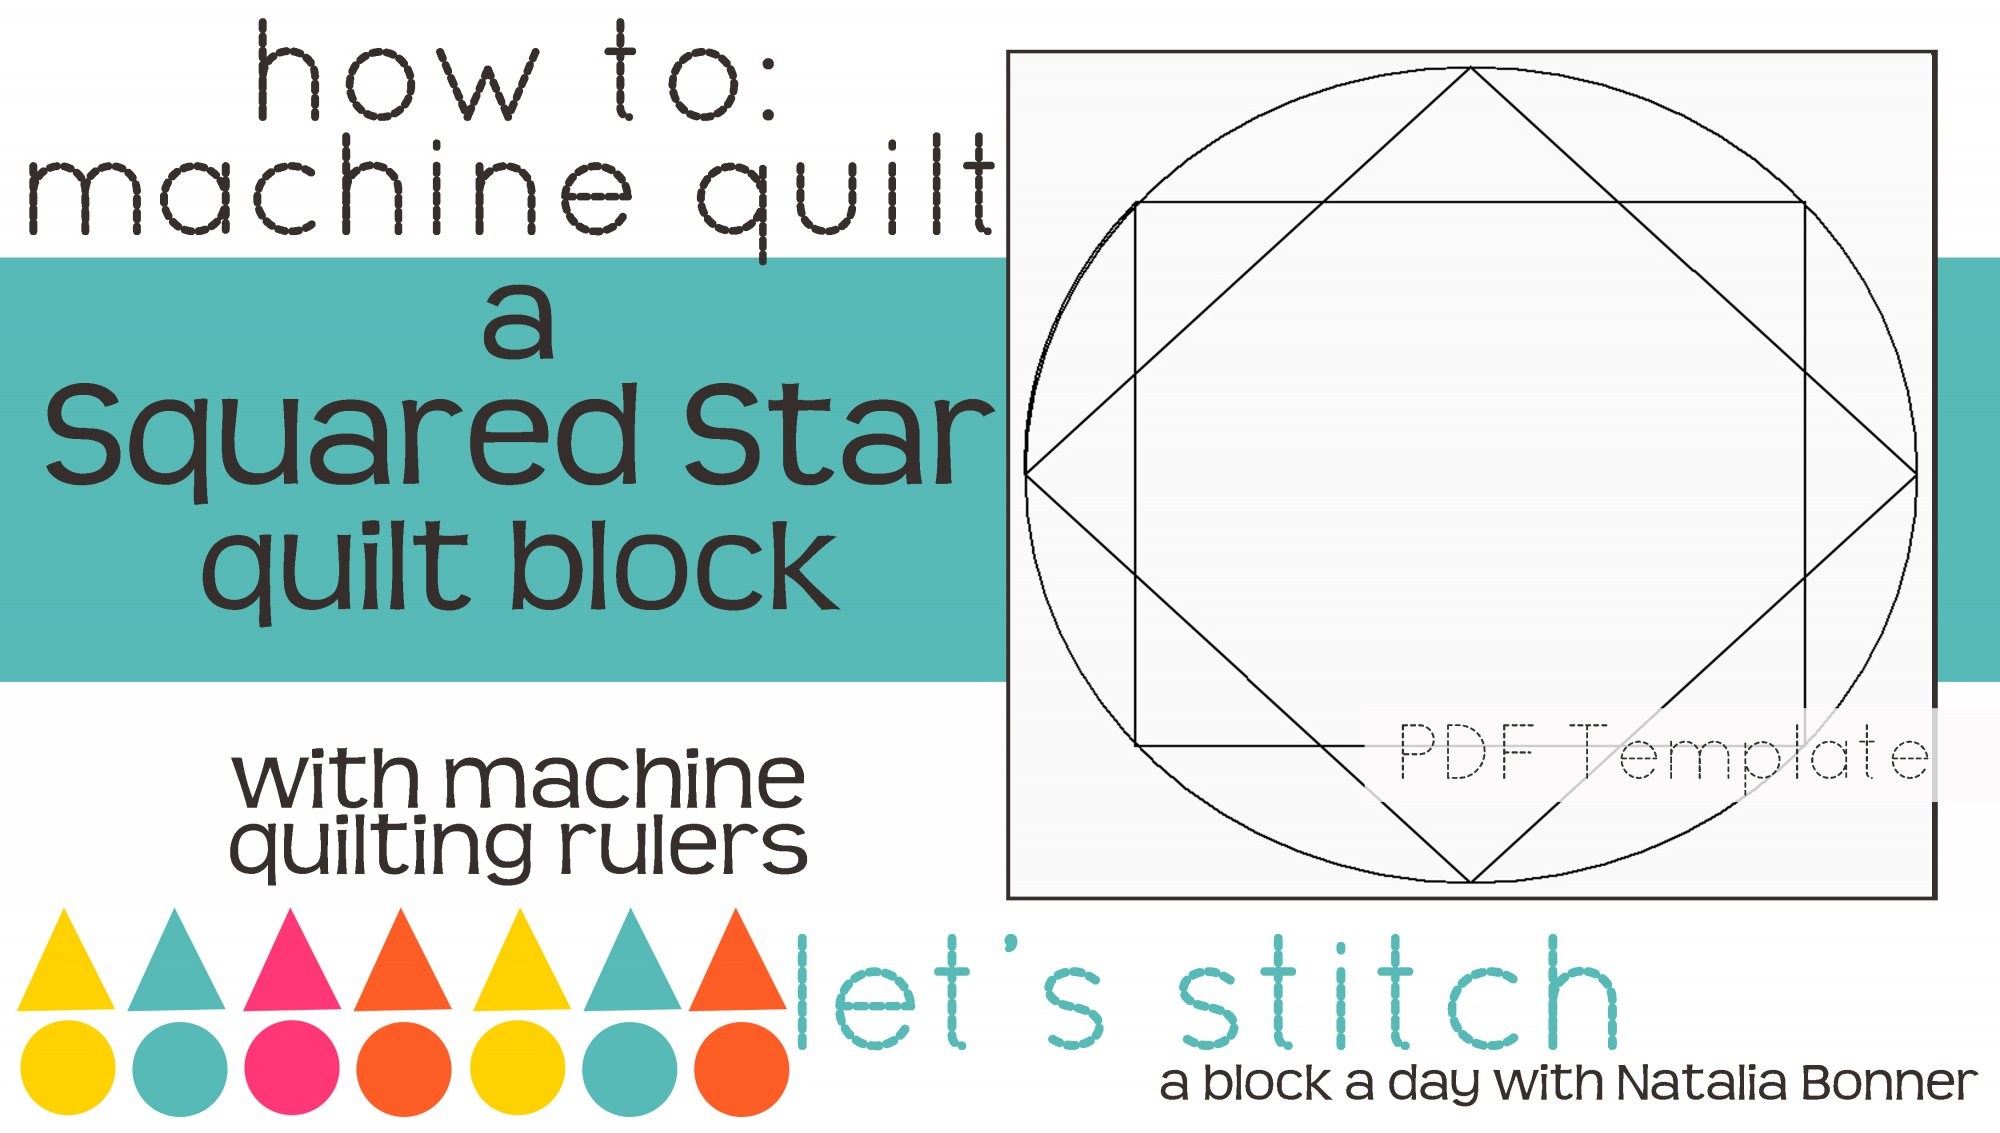 Let's Stitch - A Block a Day With Natalia Bonner - PDF - Squared Star